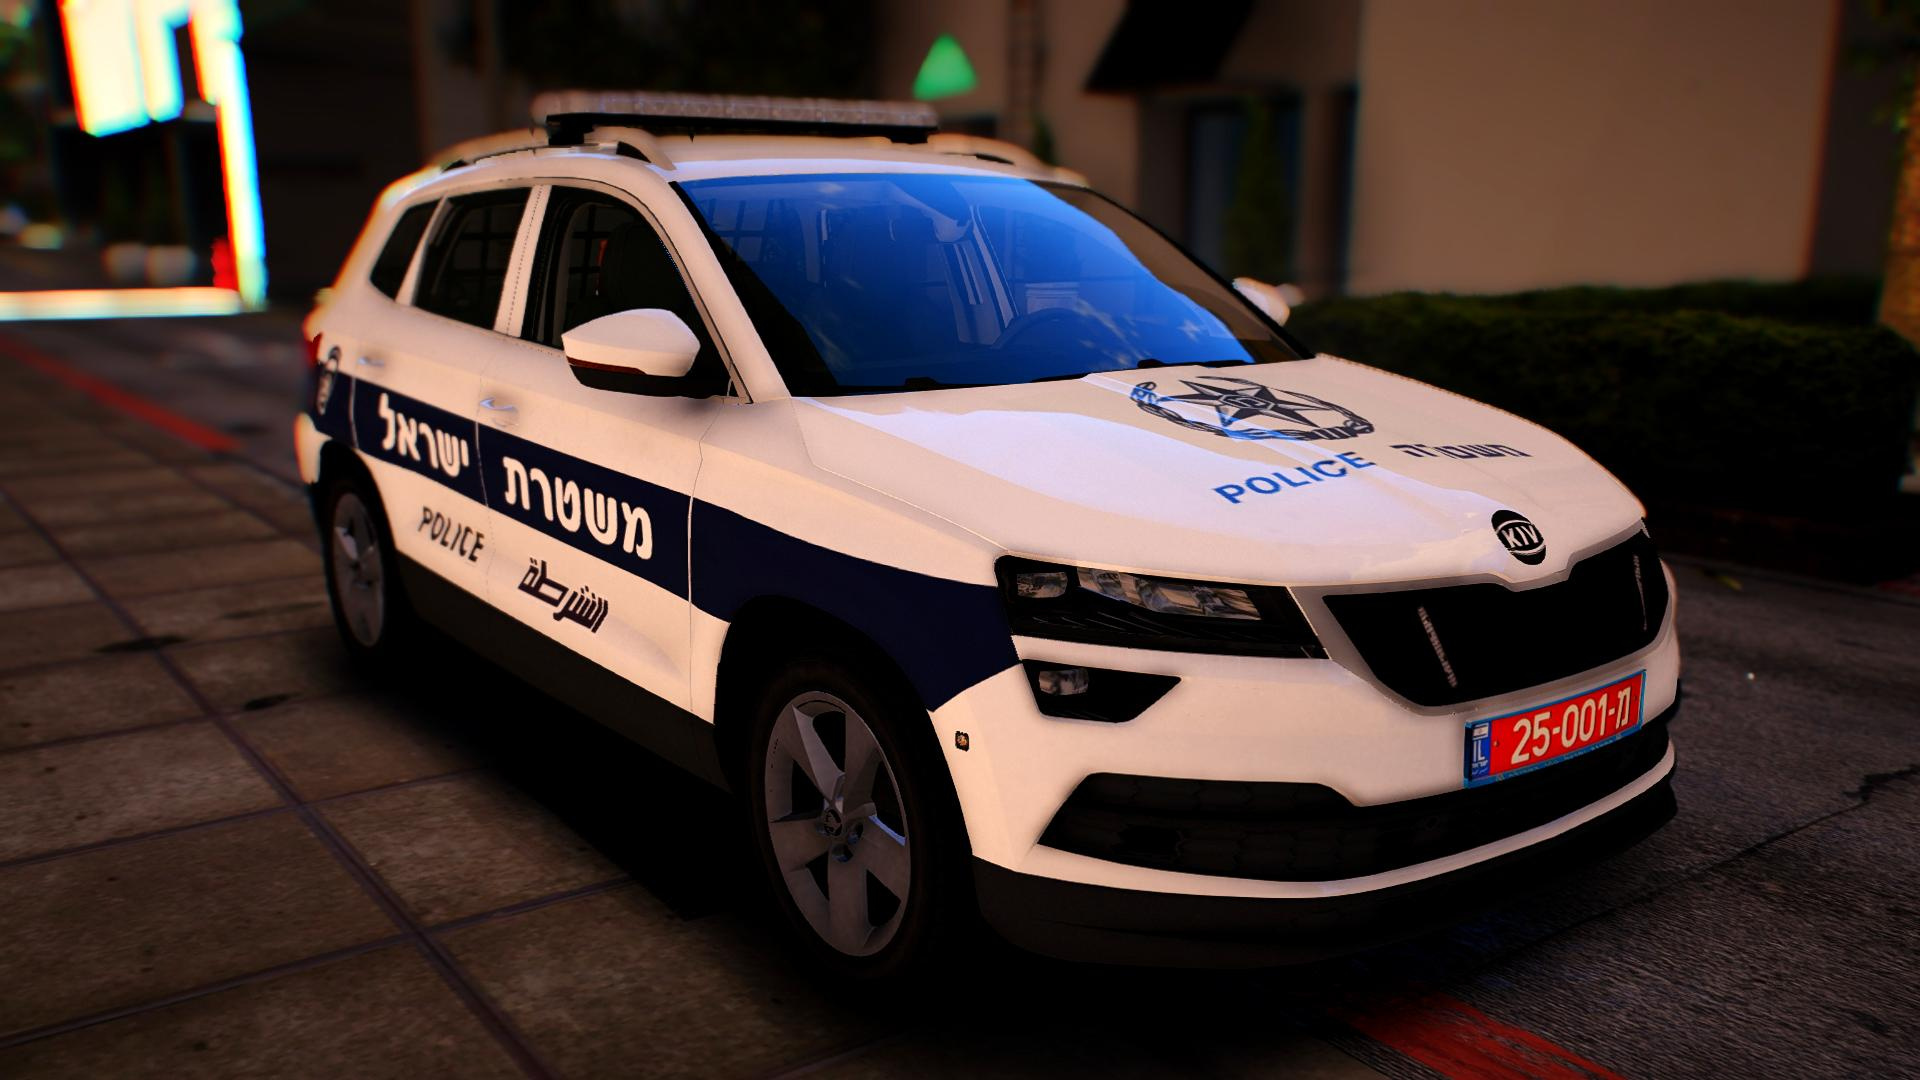 skoda karoq israeli police skin 2017 els gta5. Black Bedroom Furniture Sets. Home Design Ideas